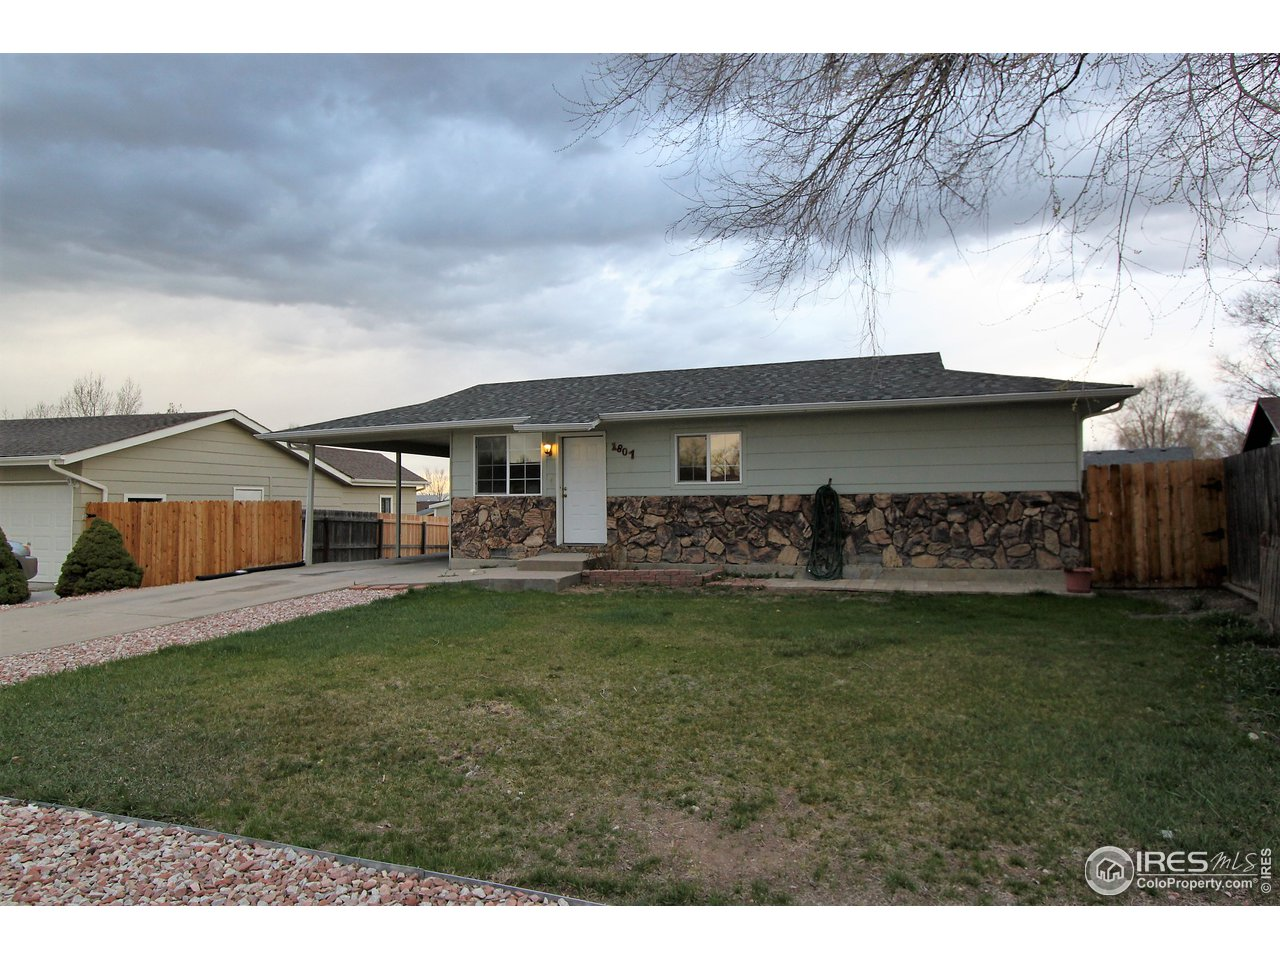 1807 IVYWOOD ST, FORT LUPTON, CO 80621